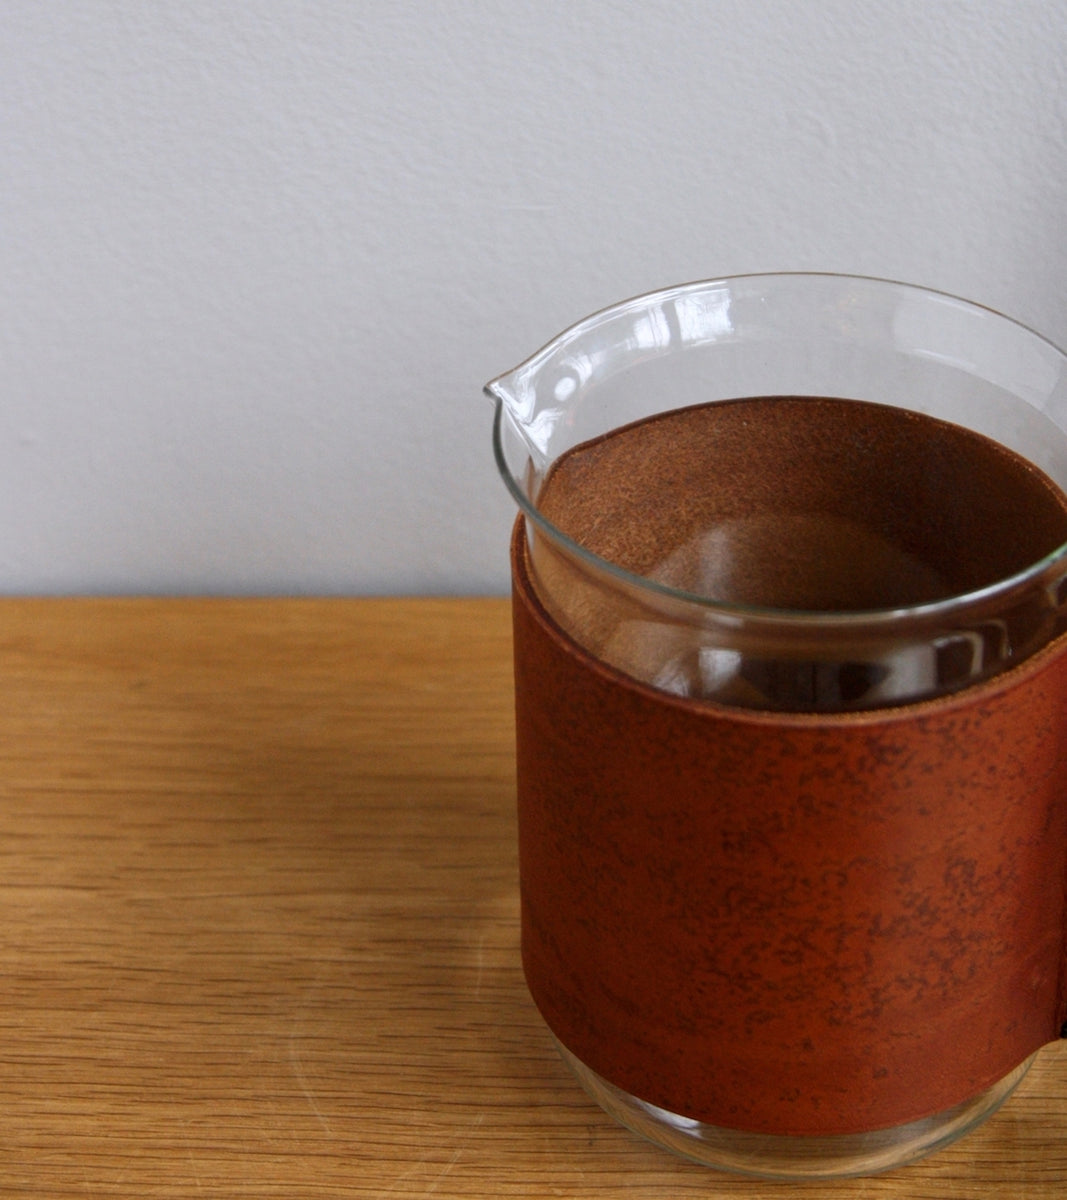 Round Tan Leather Jug & Glasses Carl Auböck - Image 7